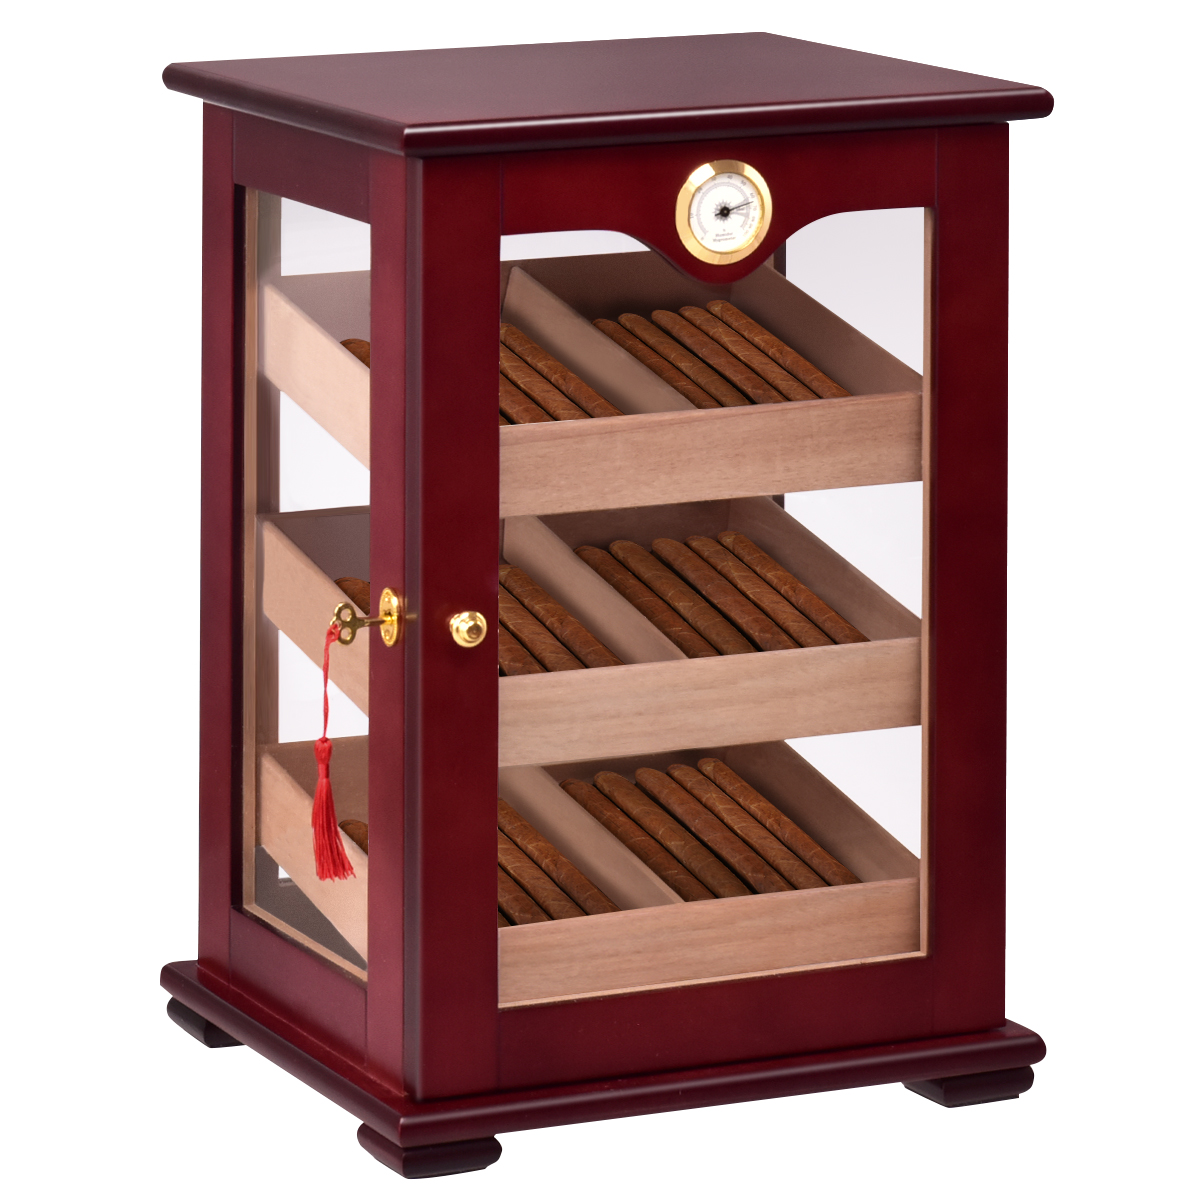 New 150 Cigars Storage Cabinet Humidifier Hygrometer Counter